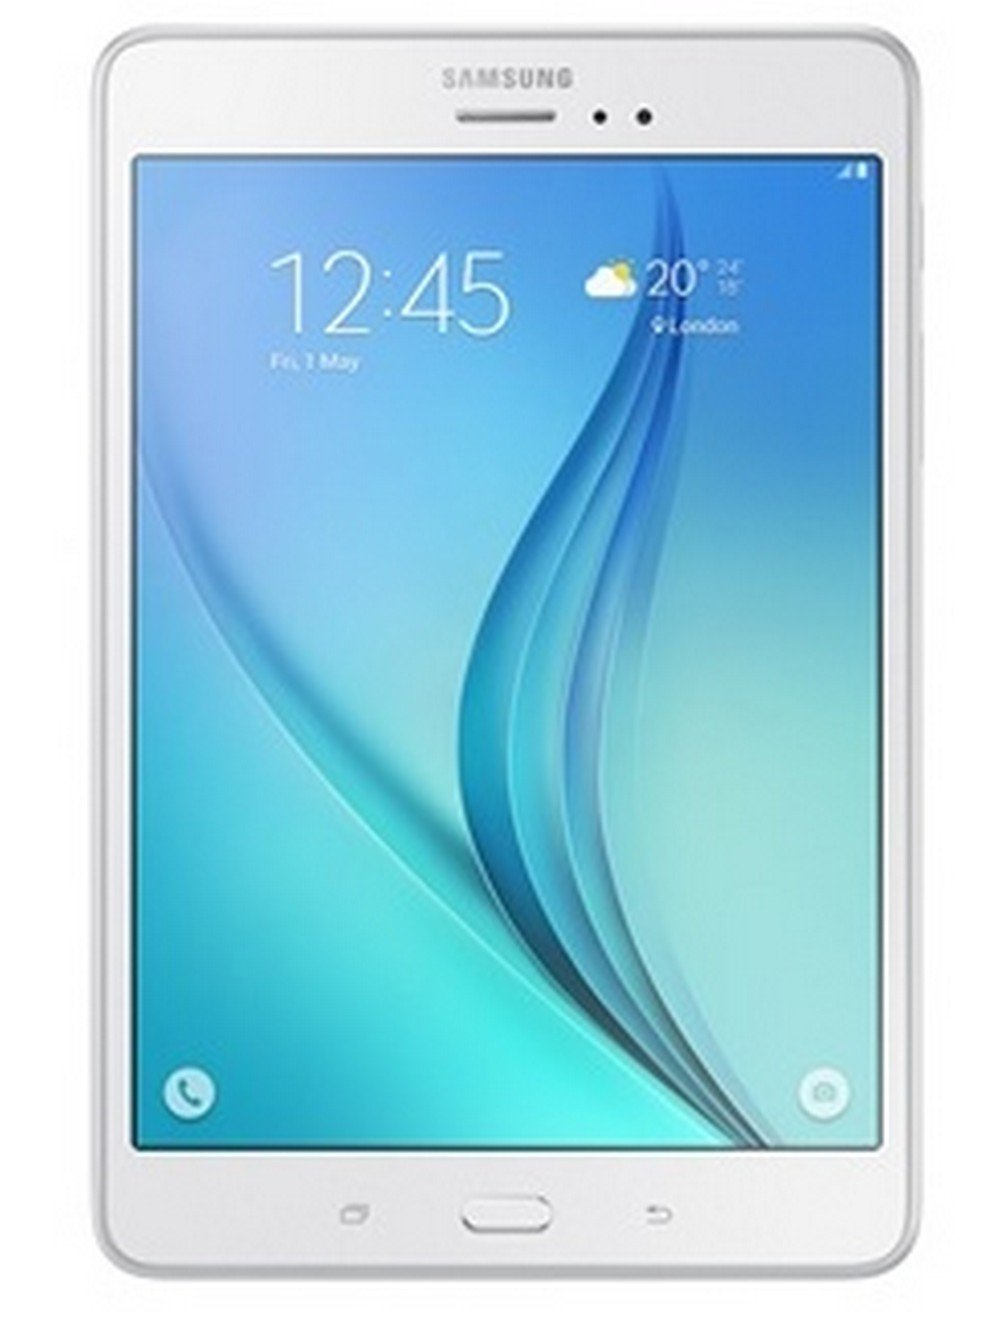 Samsung Tab A SM-T355YZWA Tablet (8 inch, 16GB, Wi-Fi+LTE+Voice Calling),Sandy White By Amazon @ Rs.16,500